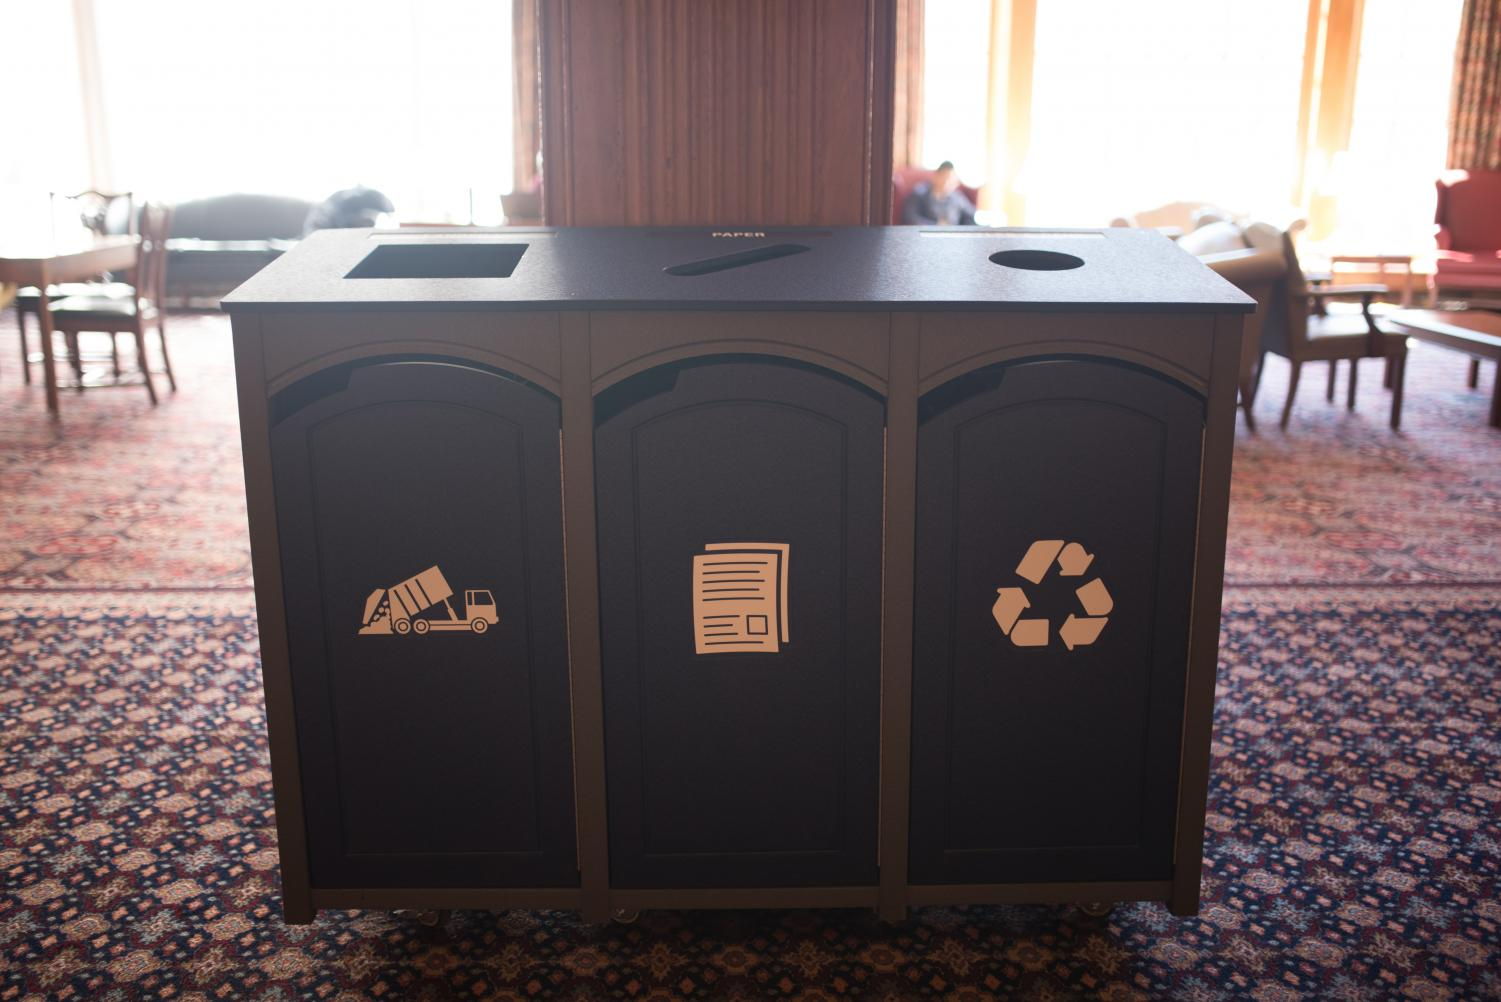 New recycling bins have been installed throughout the halls of the Illini Union. This addition reflects the University's plans to make the campus carbon-neutral by 2050.